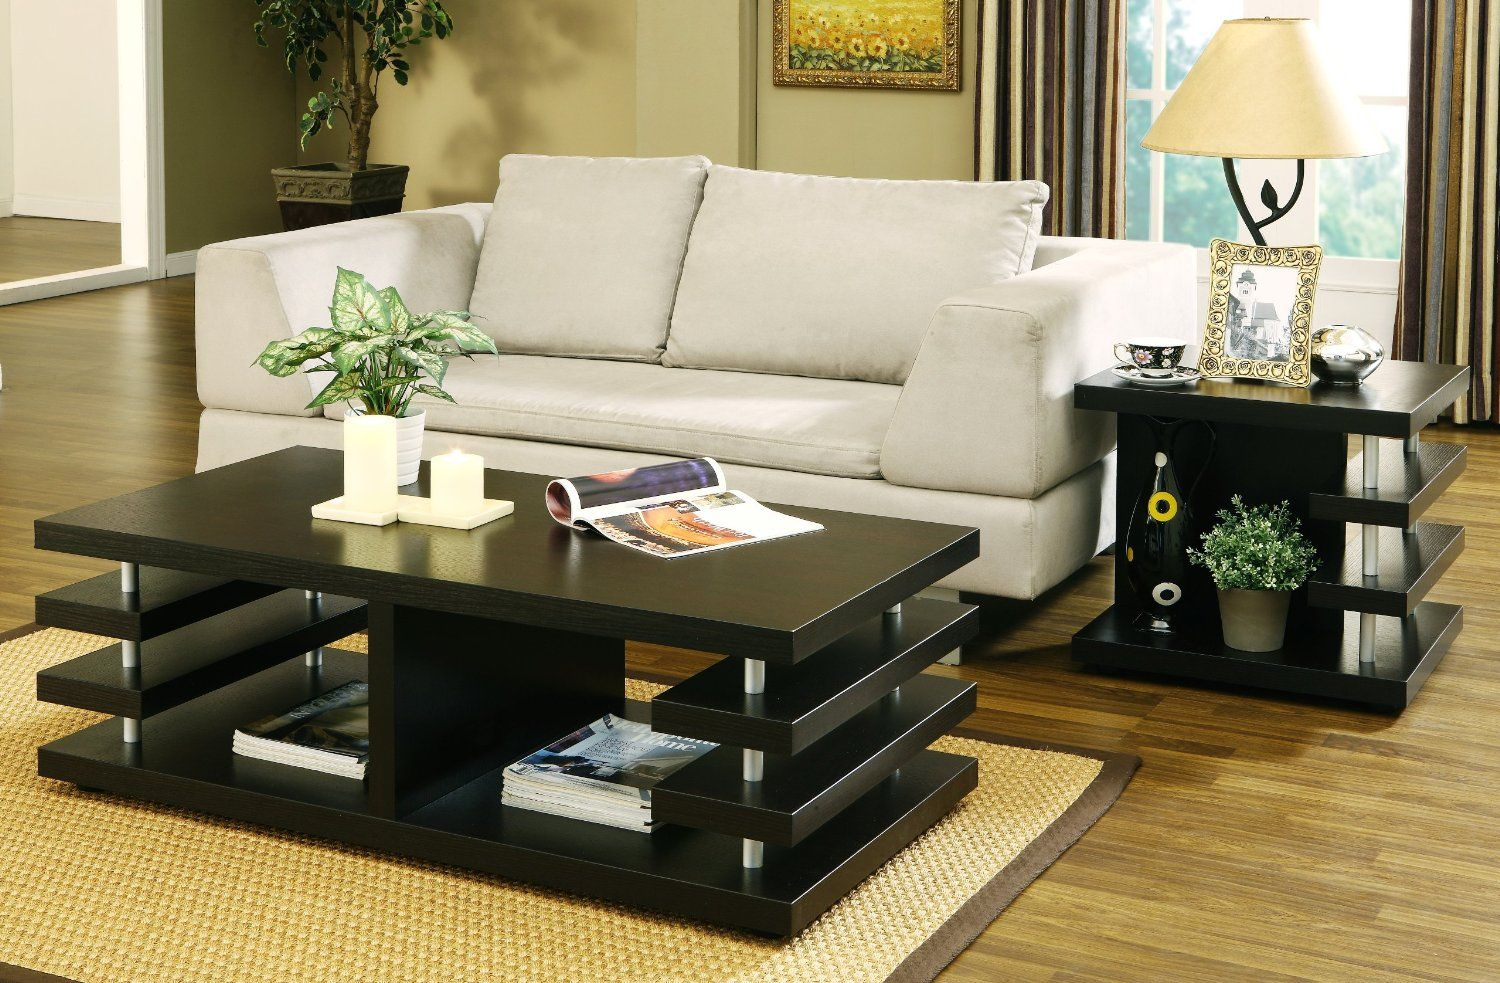 Modern Sofa Side Table Design.Black Wooden Coffee Table Design Ideas For Modern Living